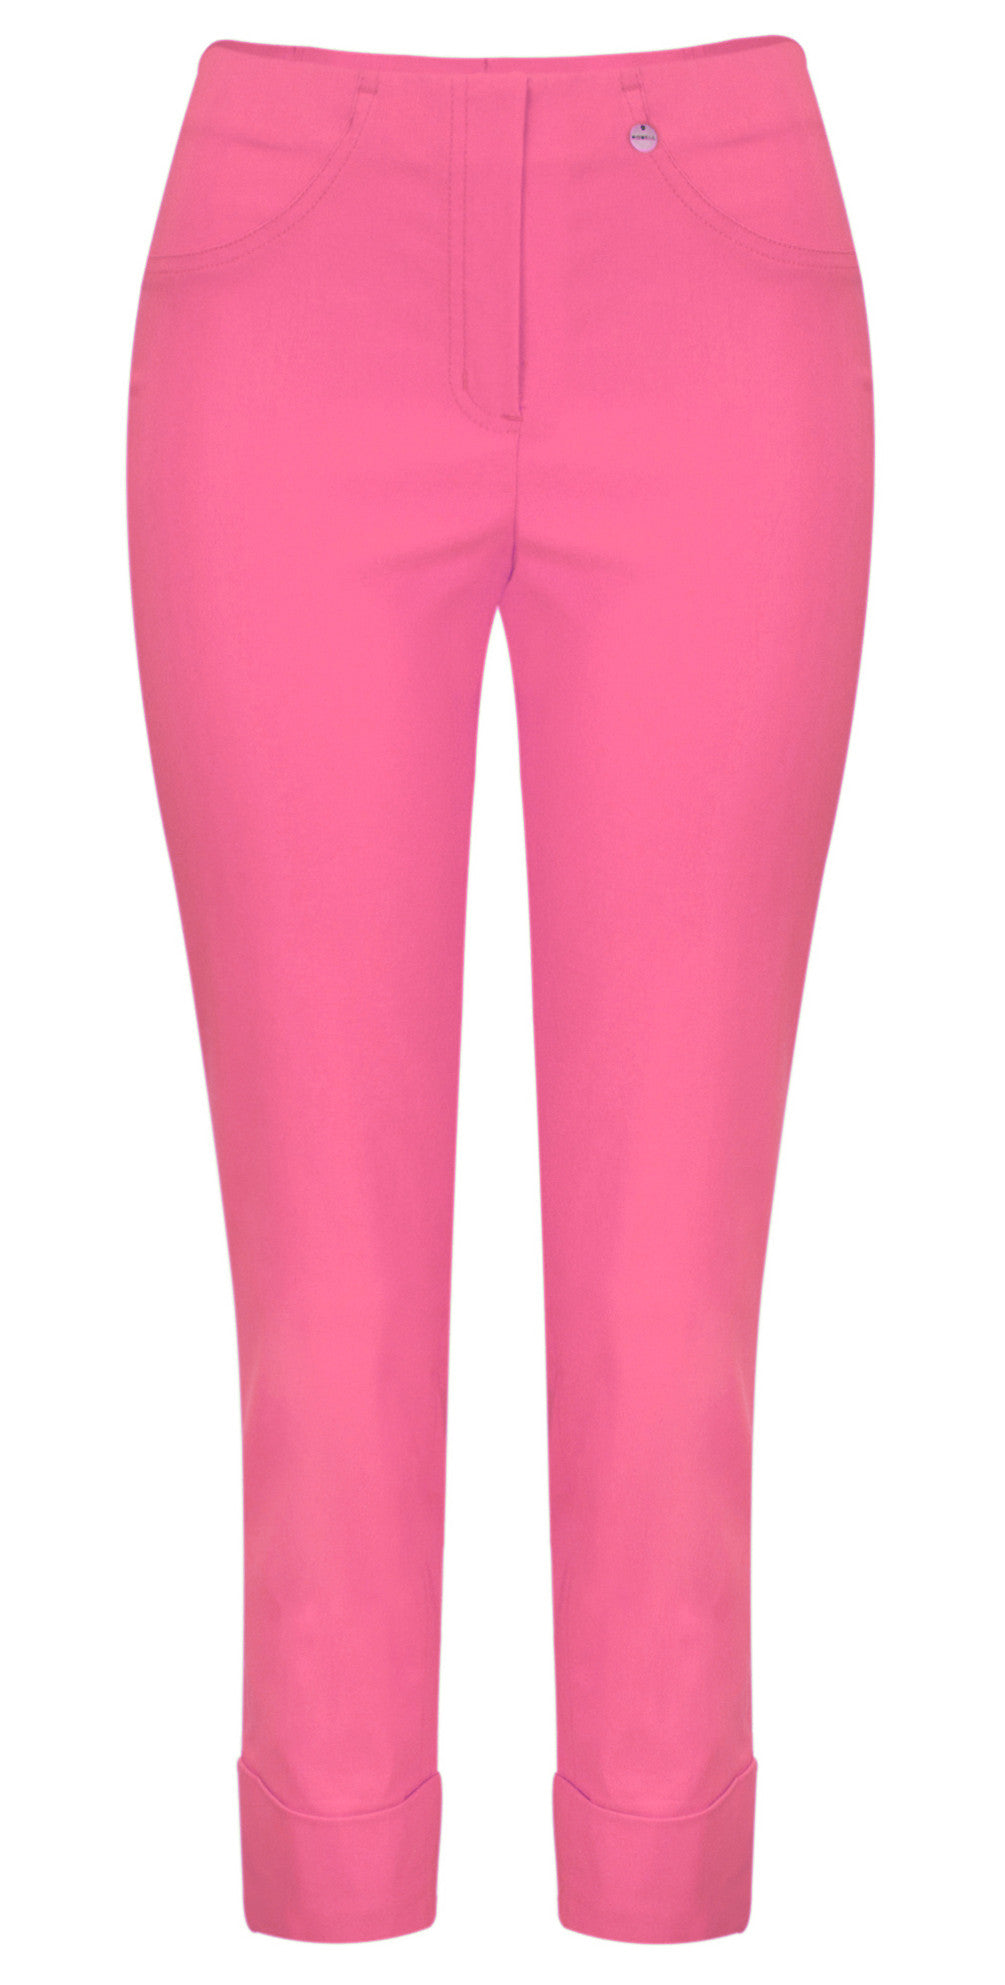 Robell Bella 7/8 Cuff Trousers for Ladies in Hot Pink